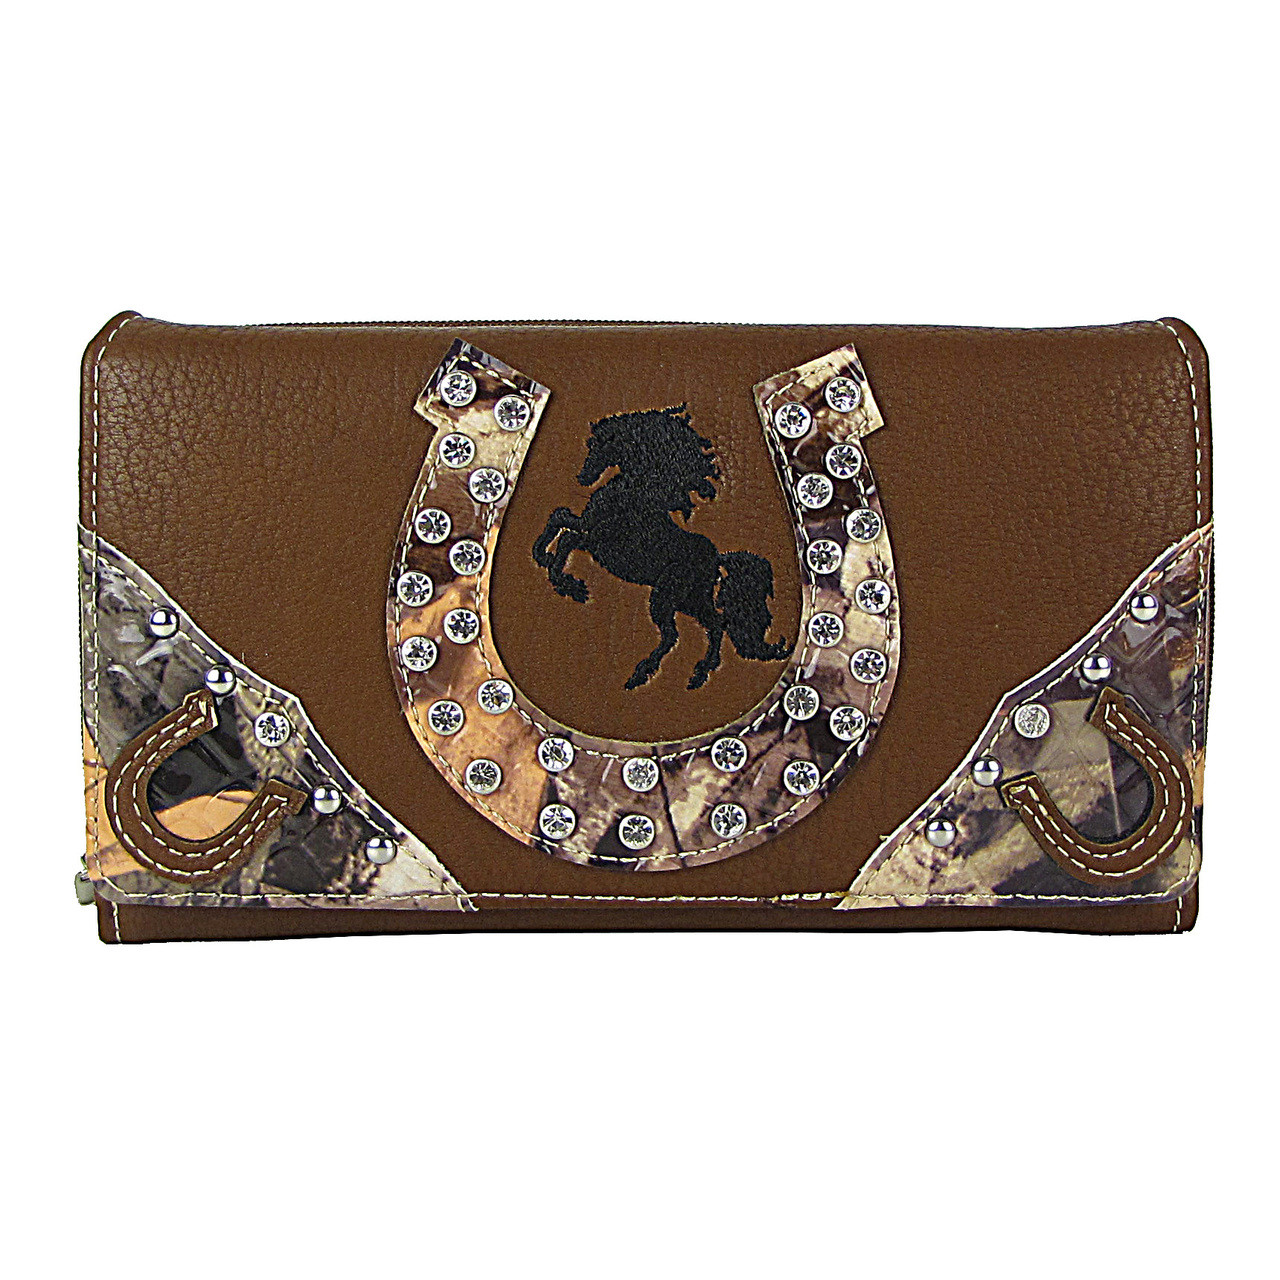 BROWN HORSESHOE WESTERN STUDDED MOSSY CAMO LOOK CHECKBOOK WALLET CB1-1276BRN